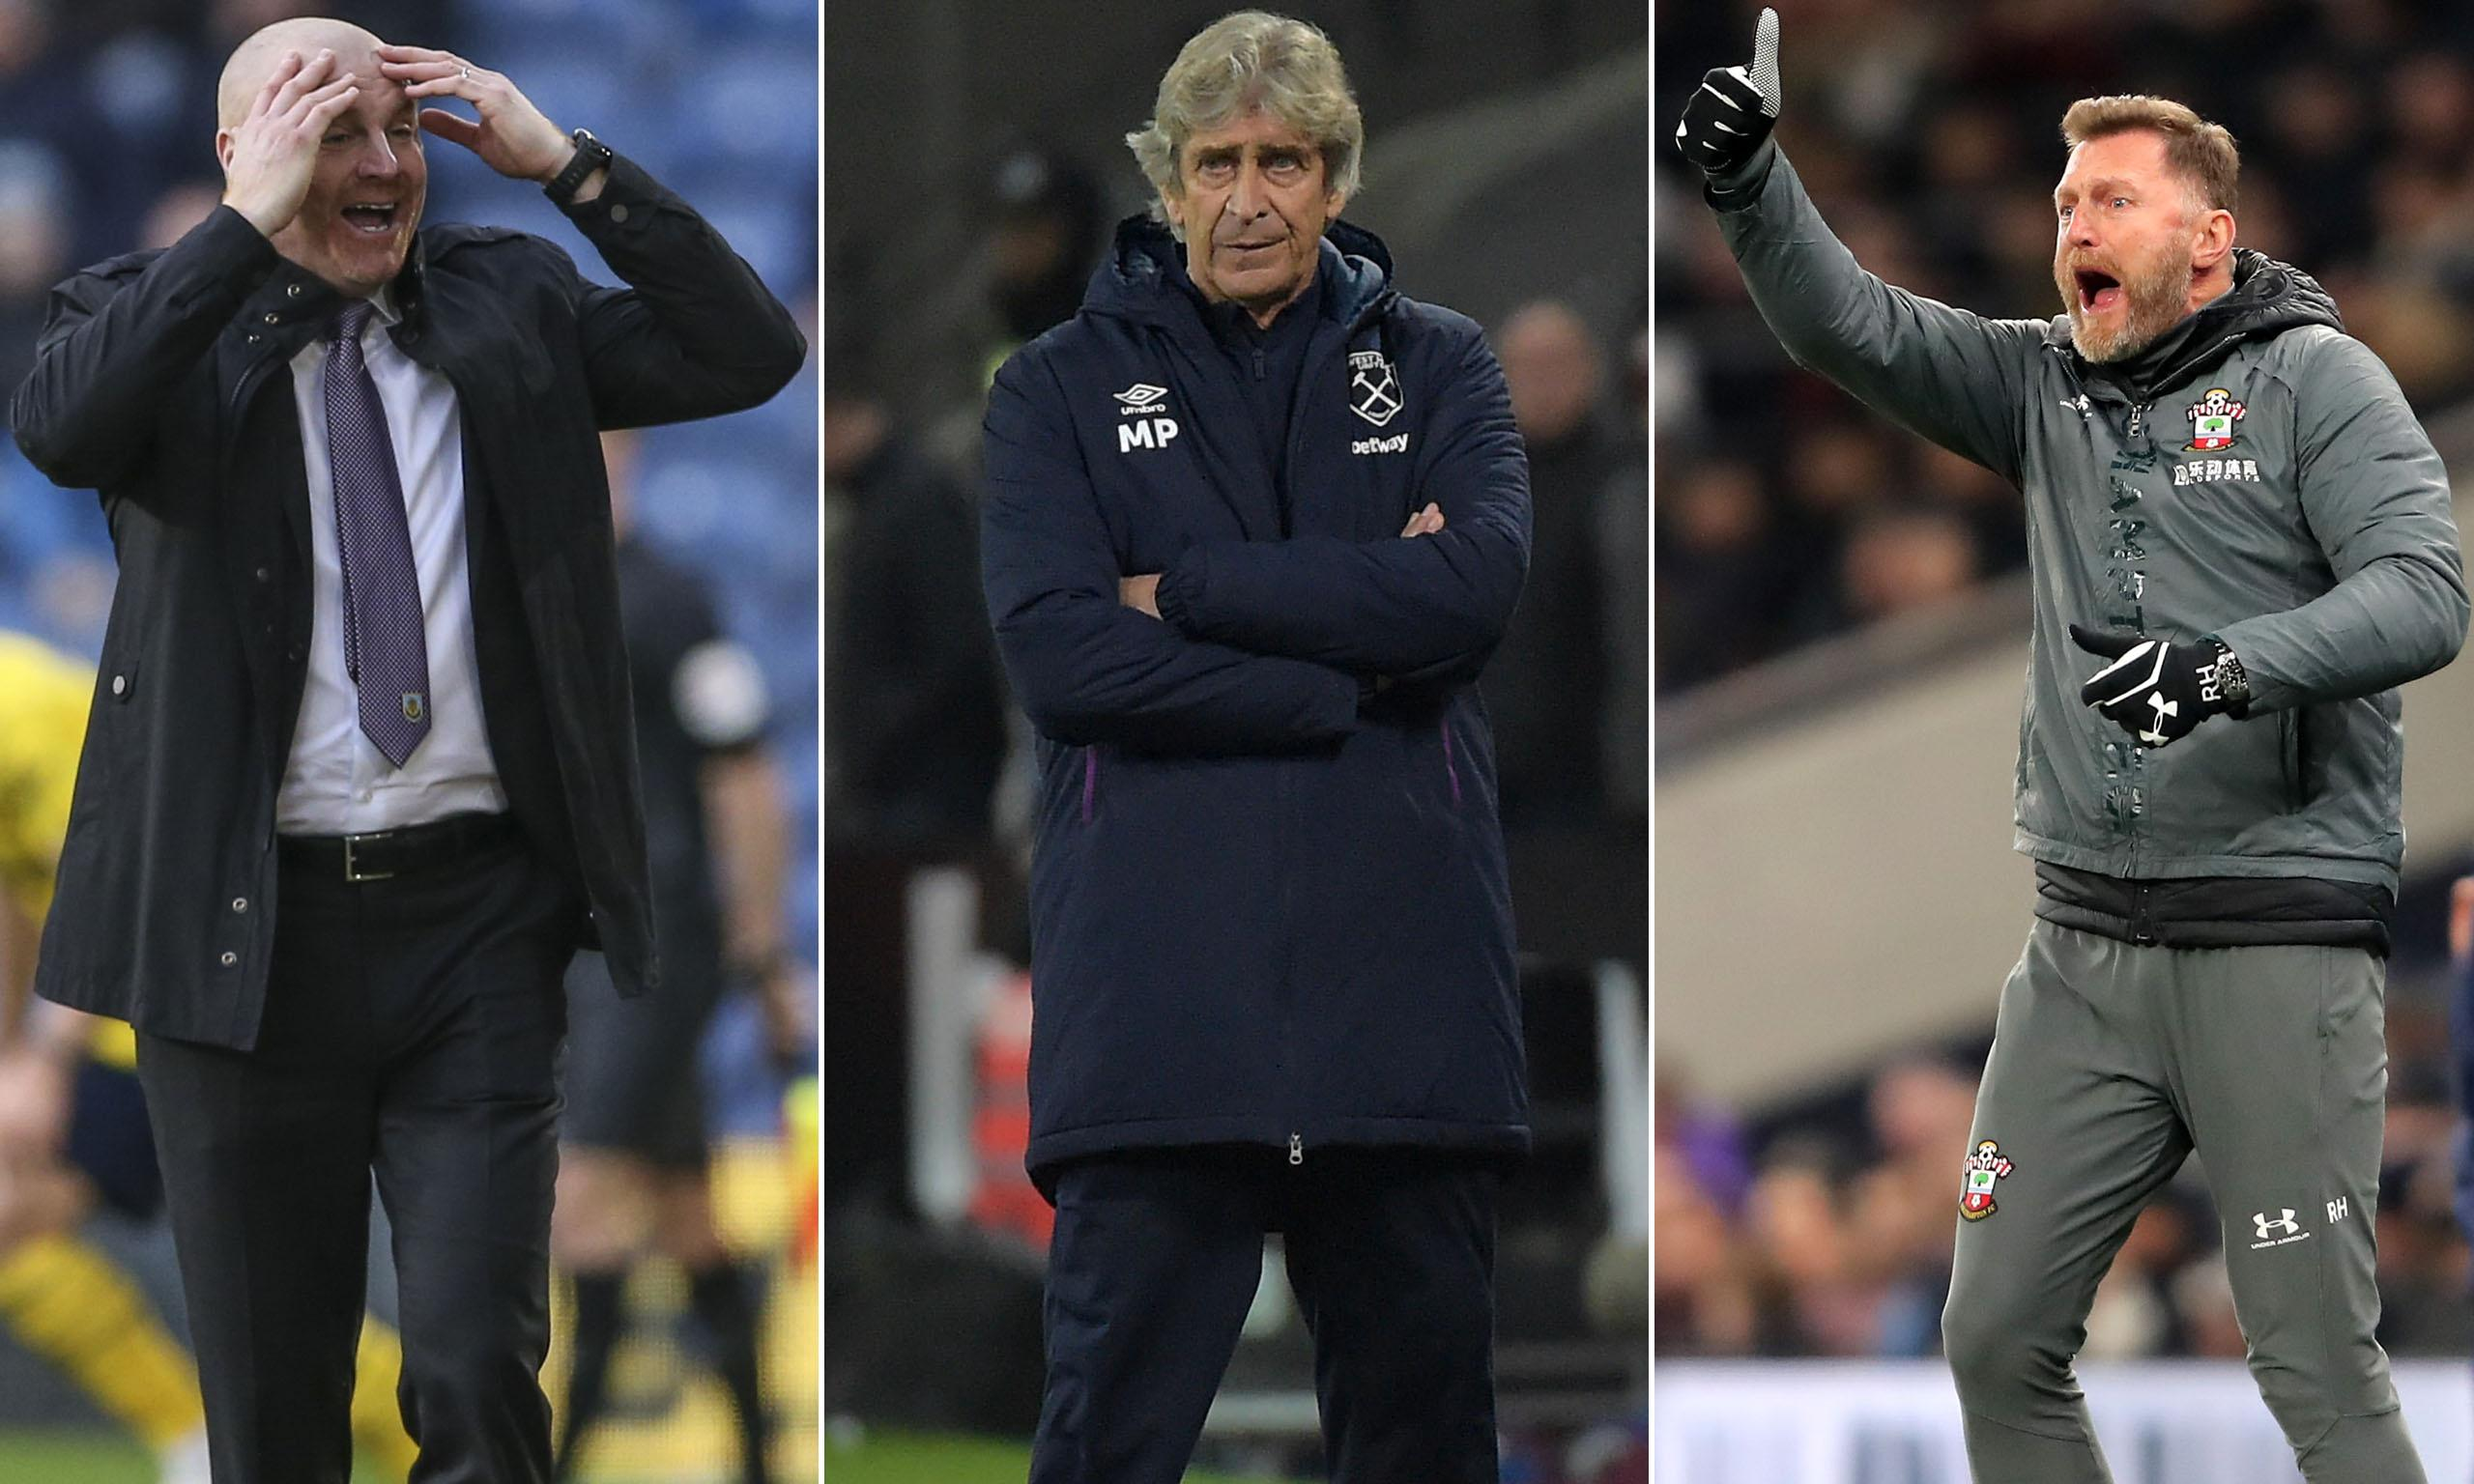 Sacking managers often doesn't work – just look at the Premier League